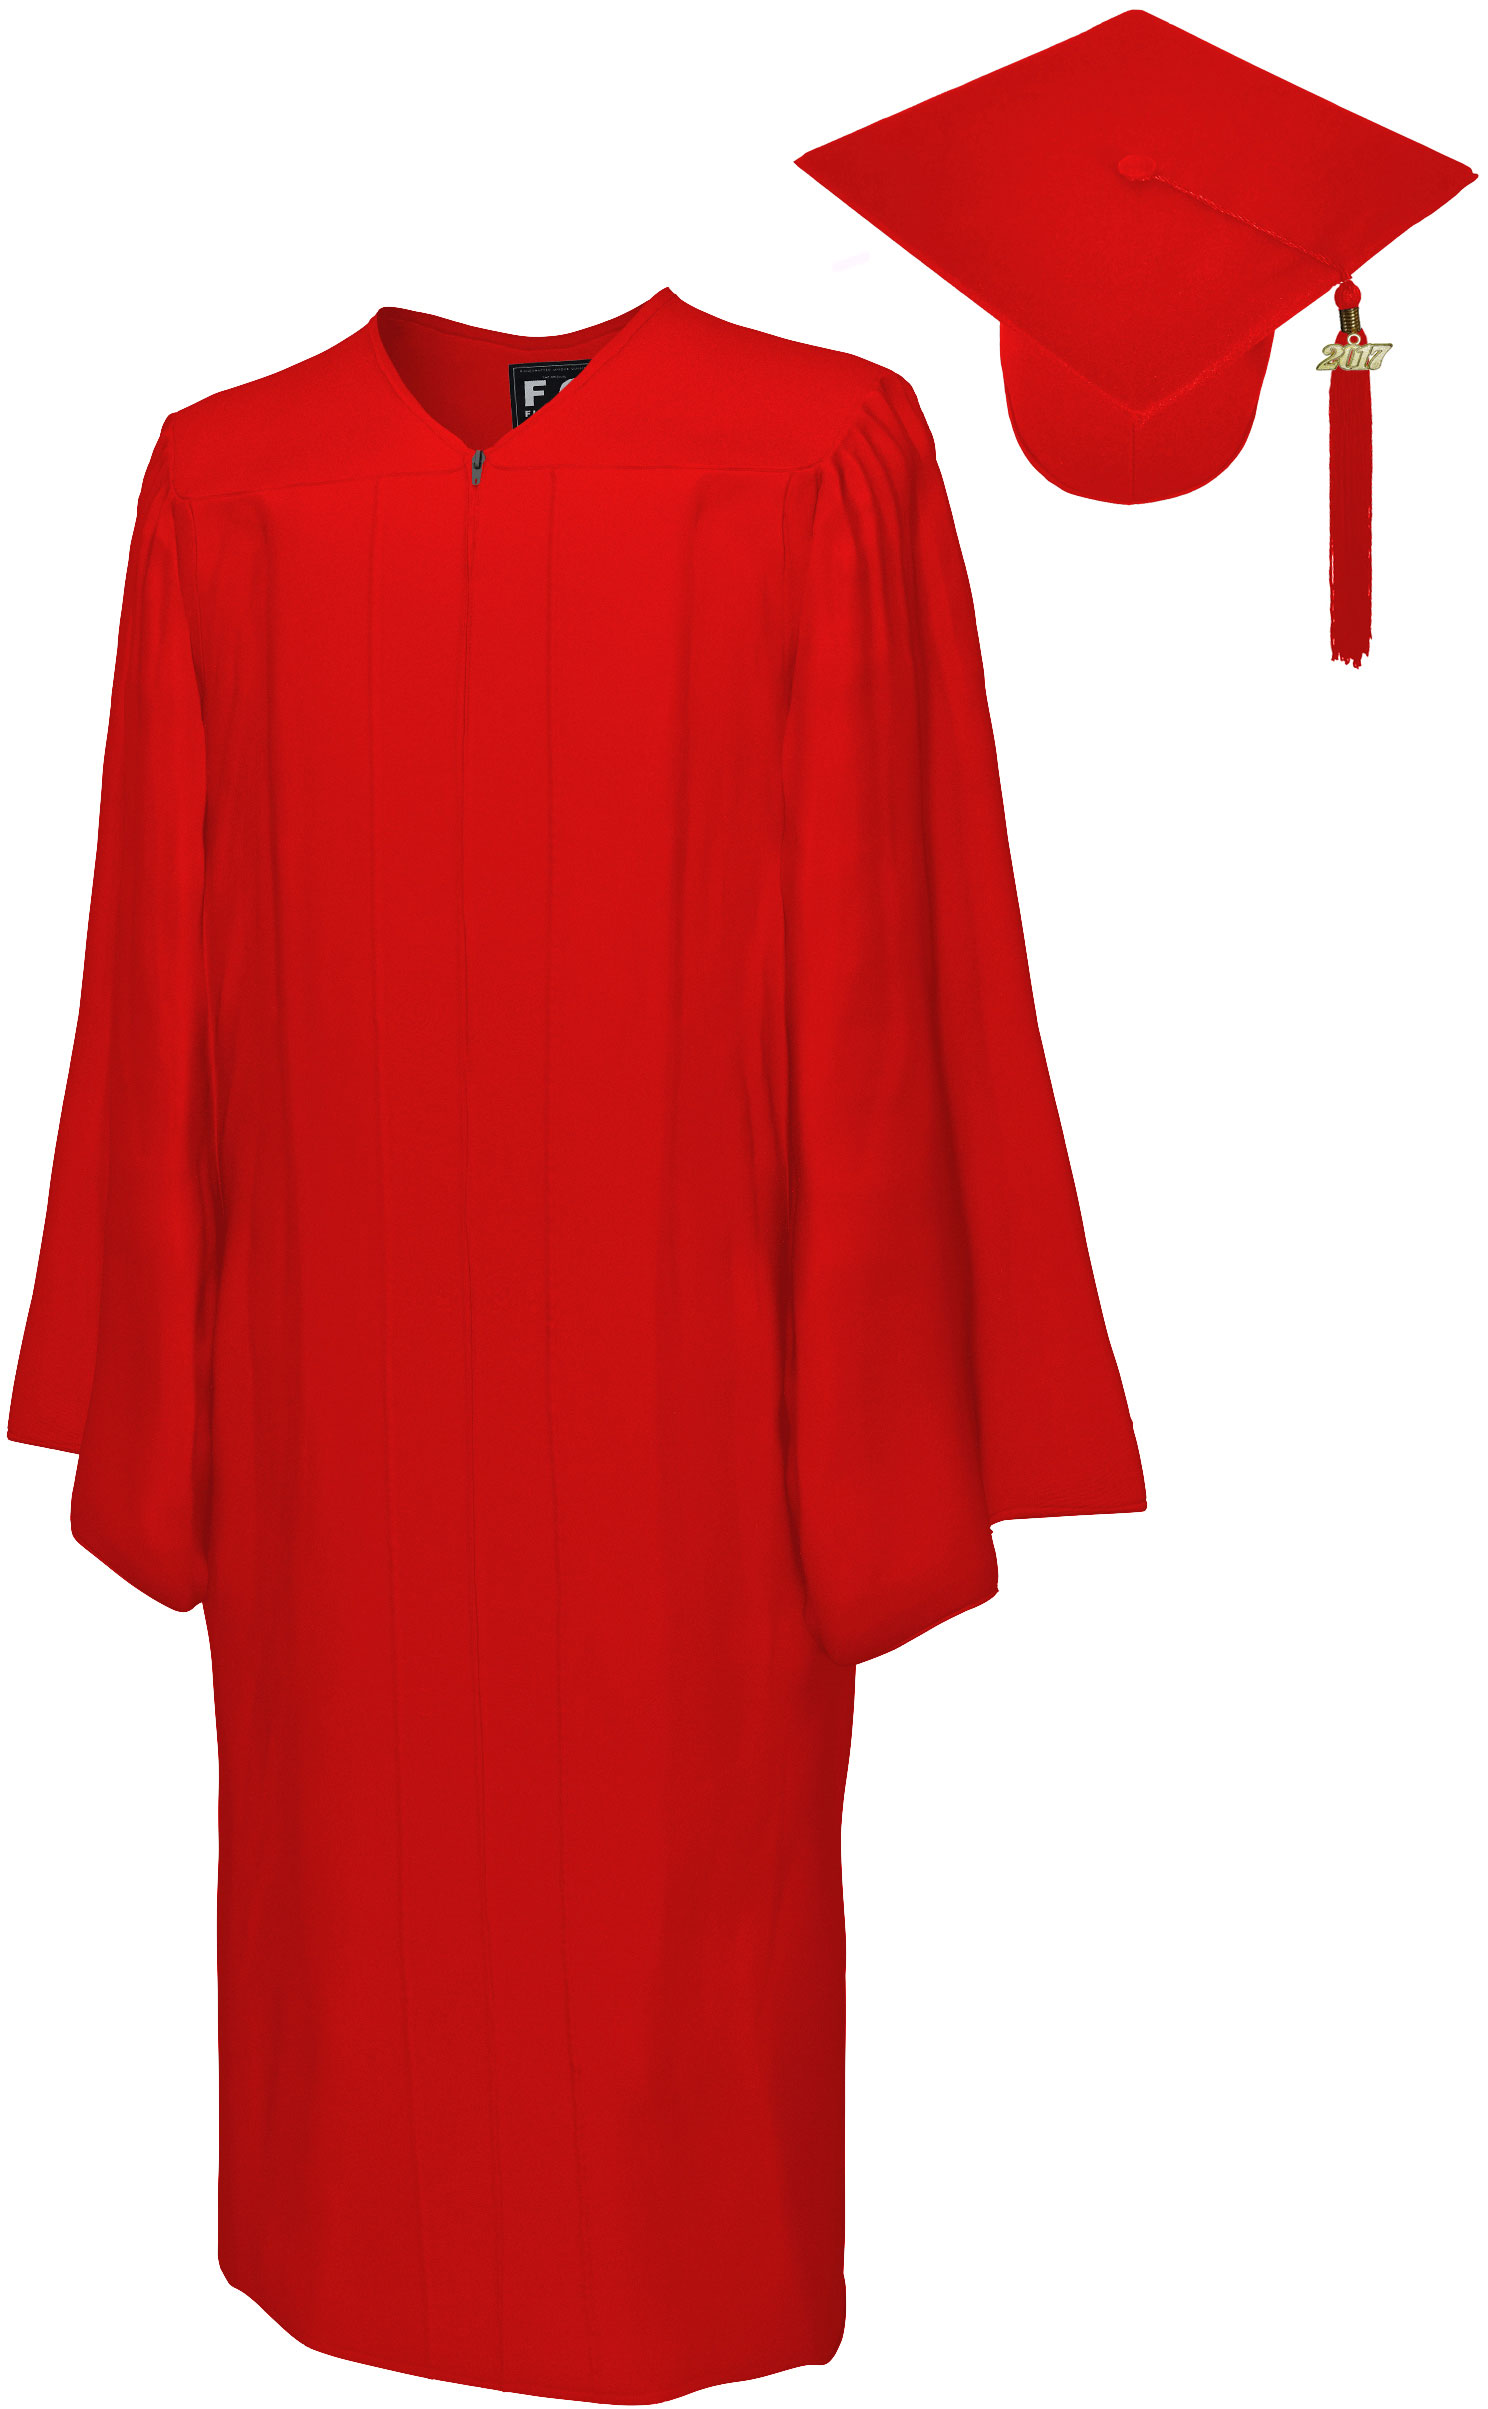 MATTE RED CAP & GOWN HIGH SCHOOL GRADUATION SET-rs4251465601592